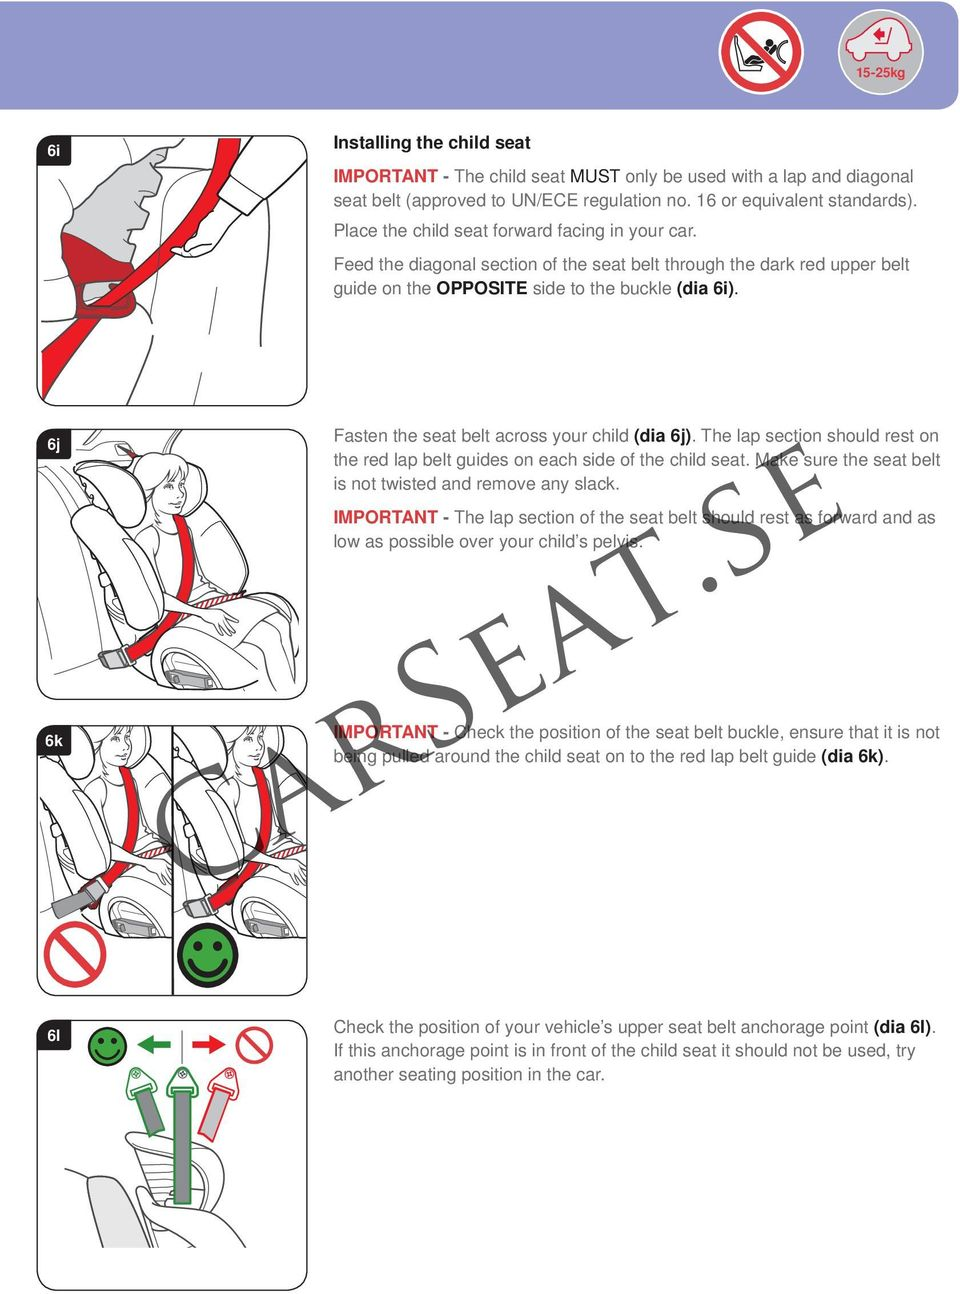 6j 6k Fasten the seat belt across your child (dia 6j). The lap section should rest on the red lap belt guides on each side of the child seat.